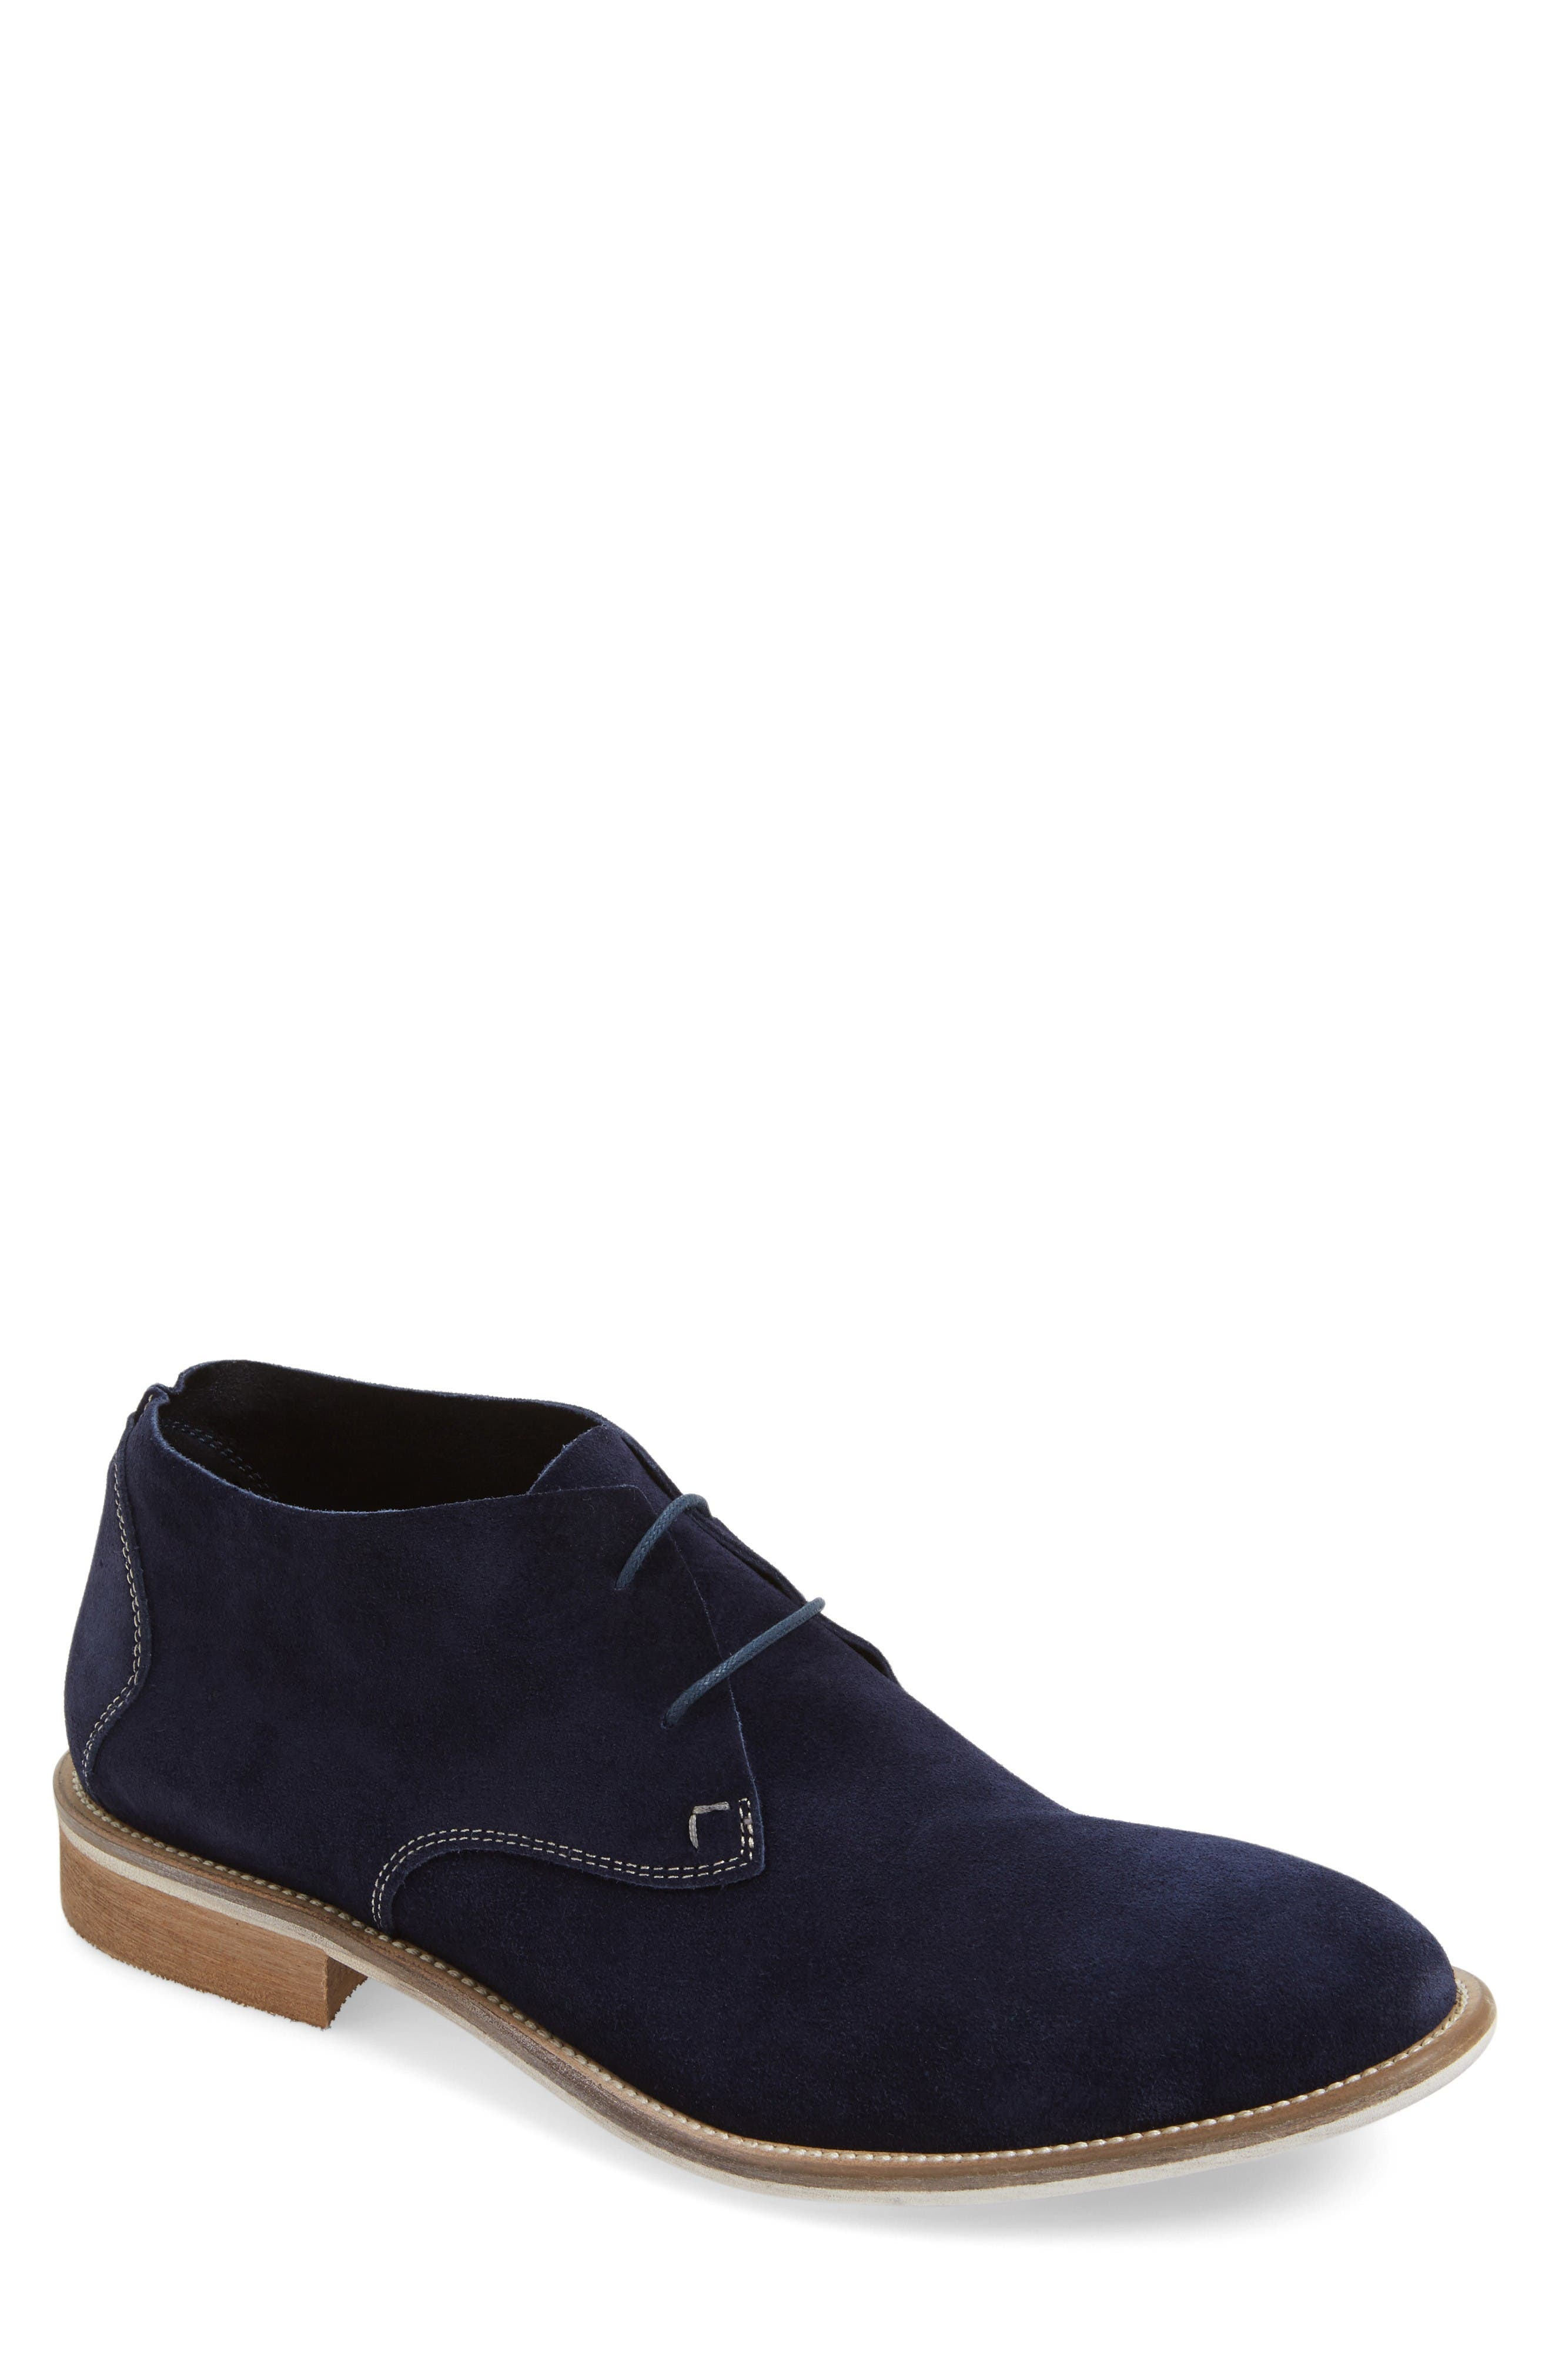 Alternate Image 1 Selected - Kenneth Cole New York Take Comfort Chukka Boot (Men)